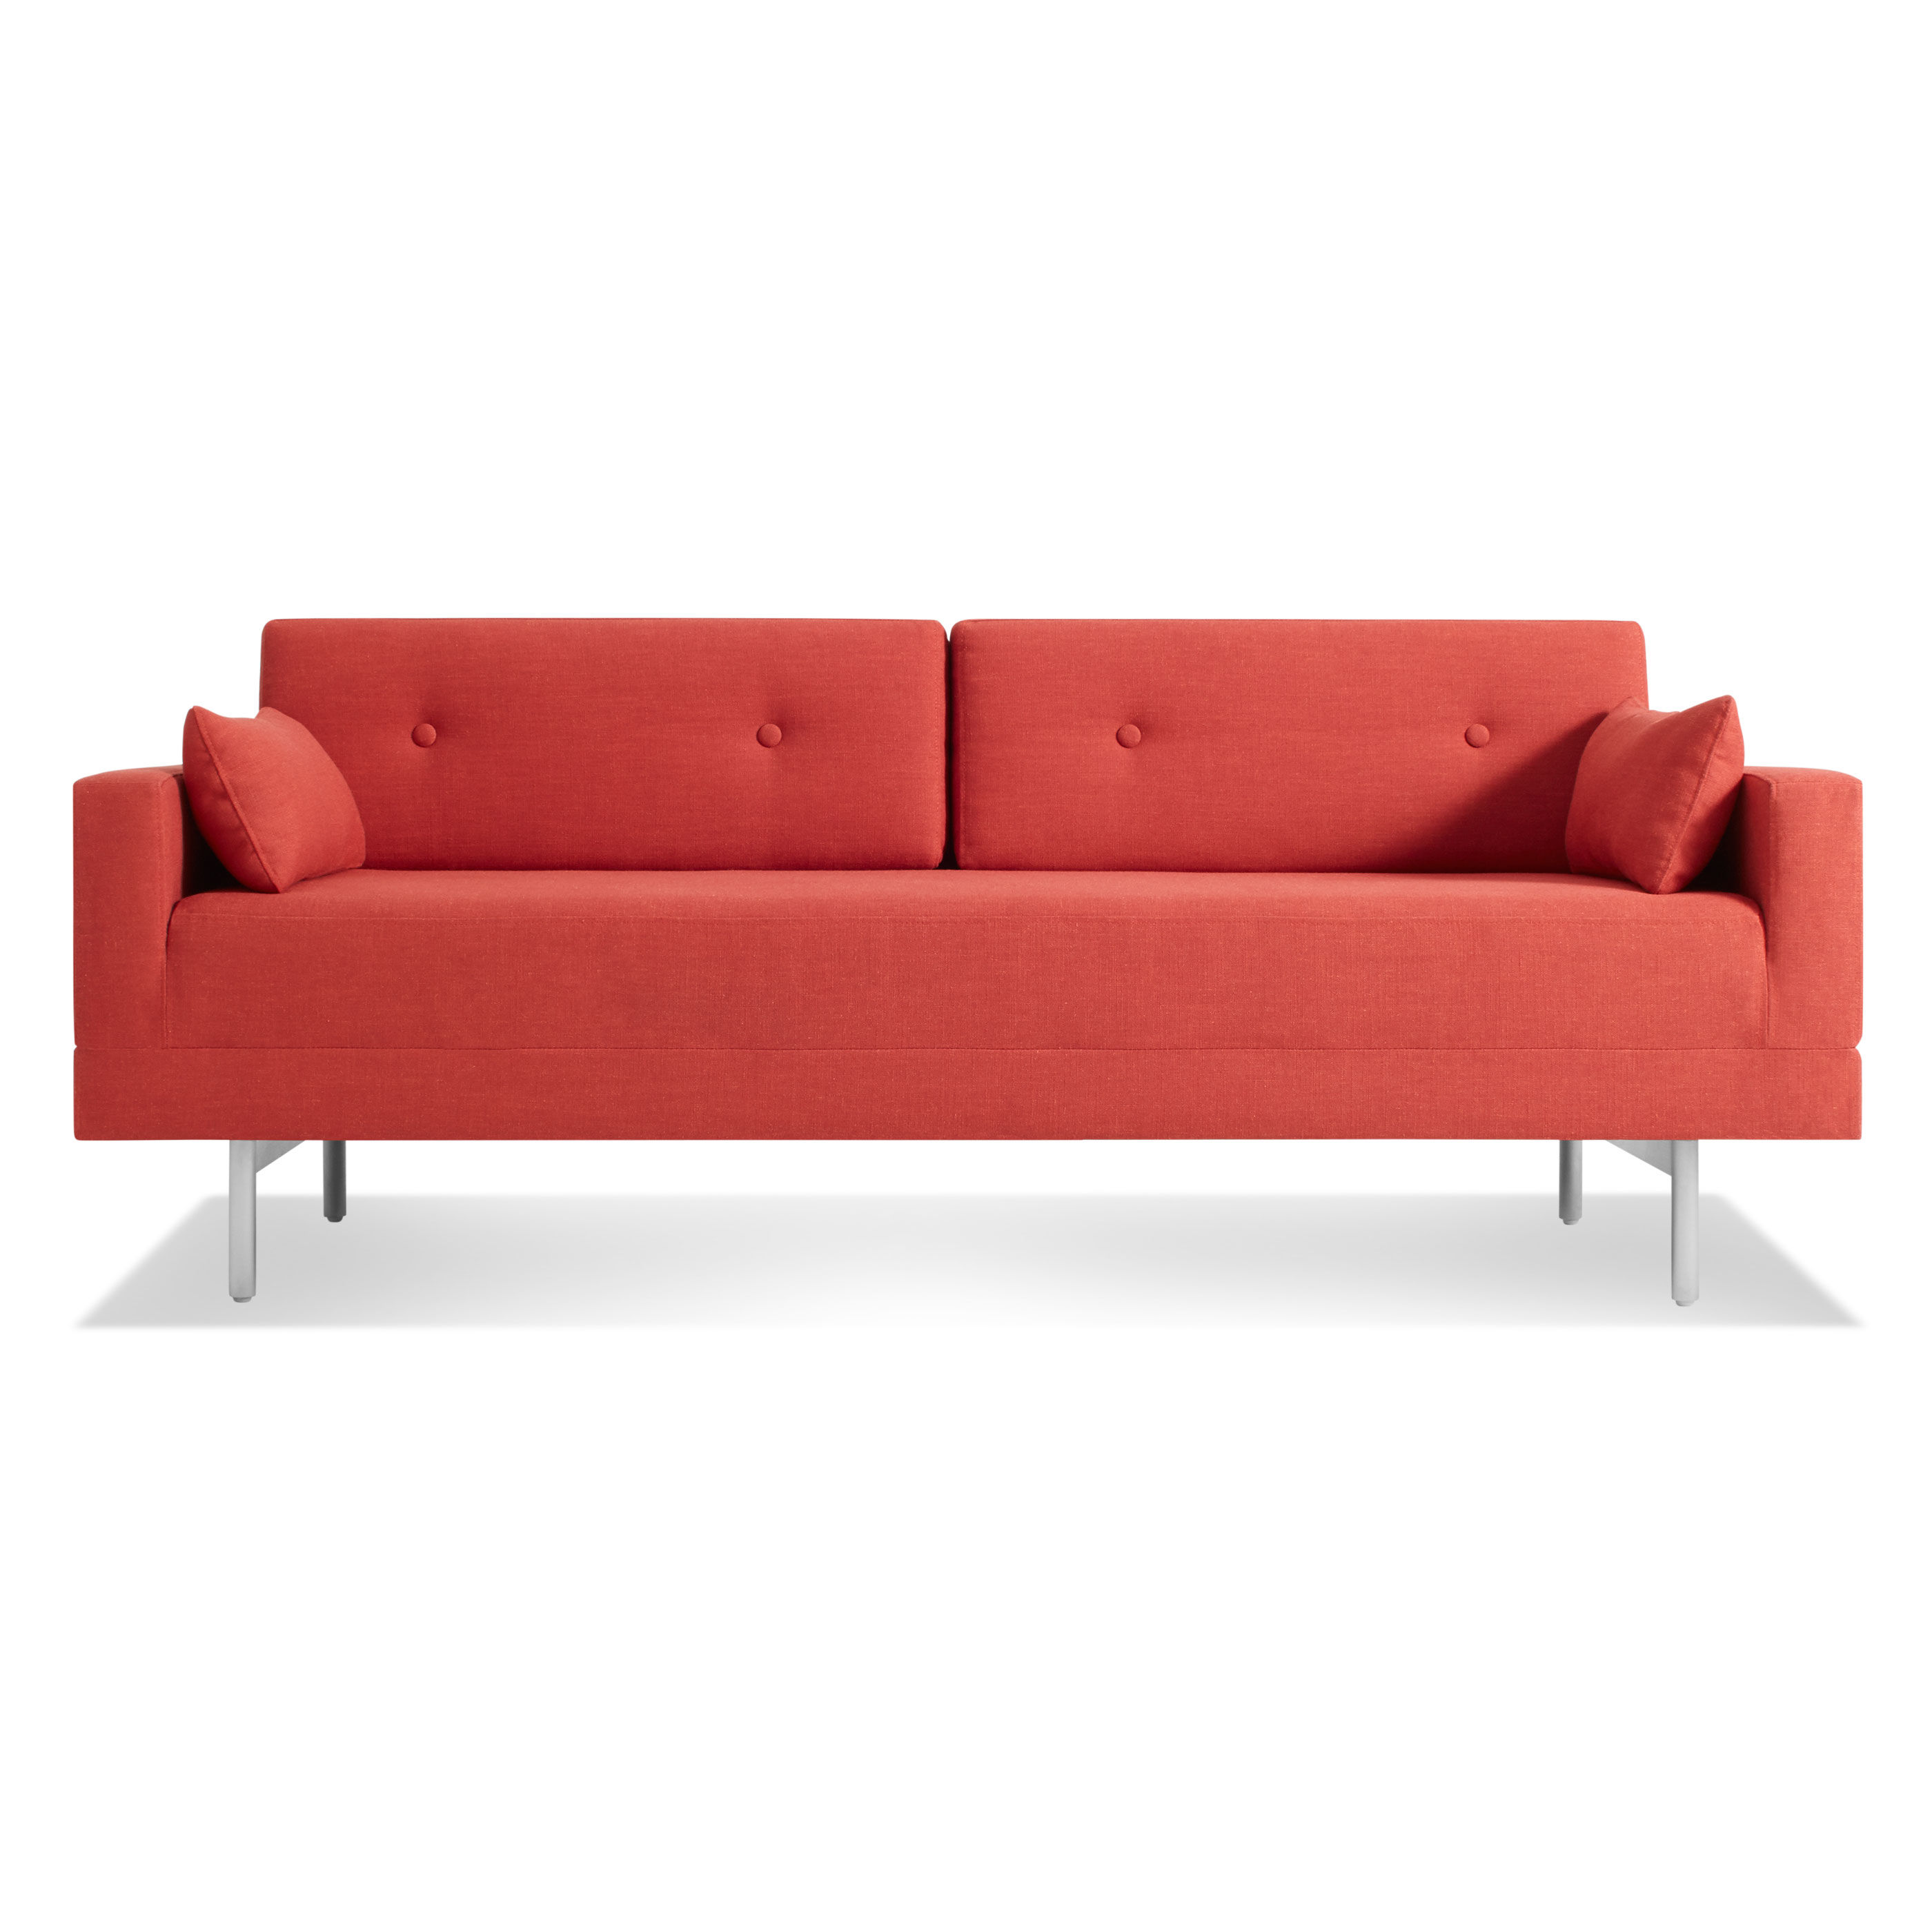 fancy round sectional sofa photo-Fresh Round Sectional sofa Concept